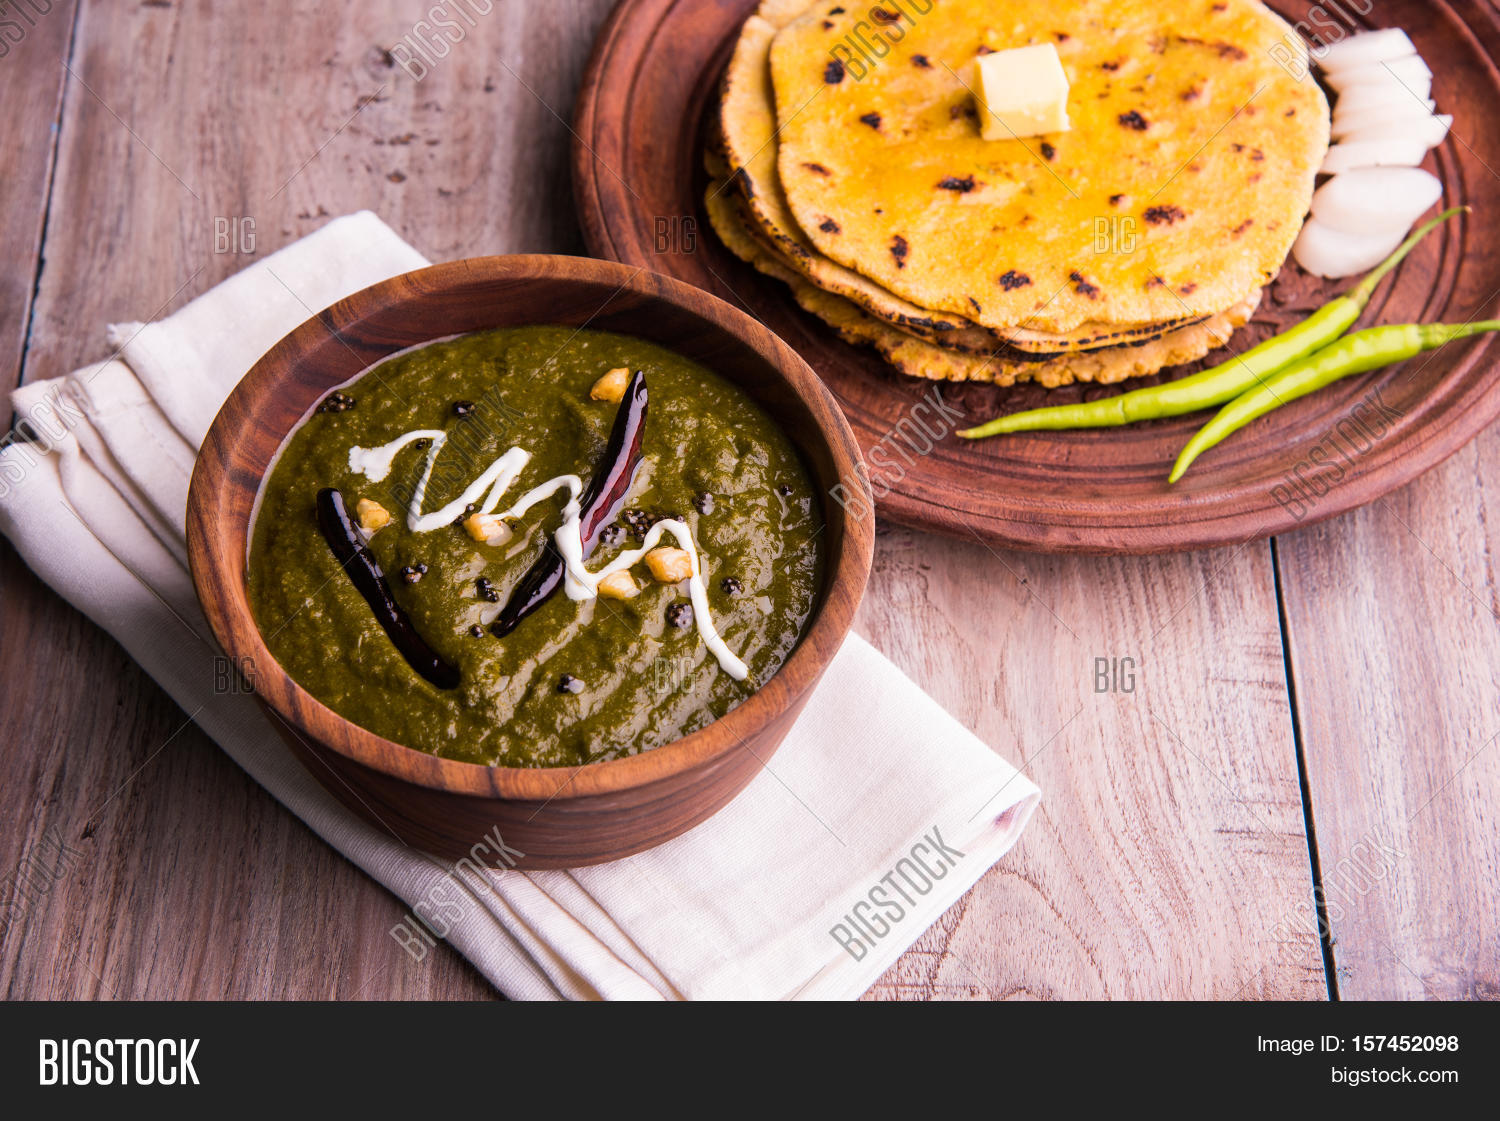 Corn flour flat bread image photo free trial bigstock corn flour flat bread or roti or makki ki roti with sarso da saag or mustard forumfinder Gallery